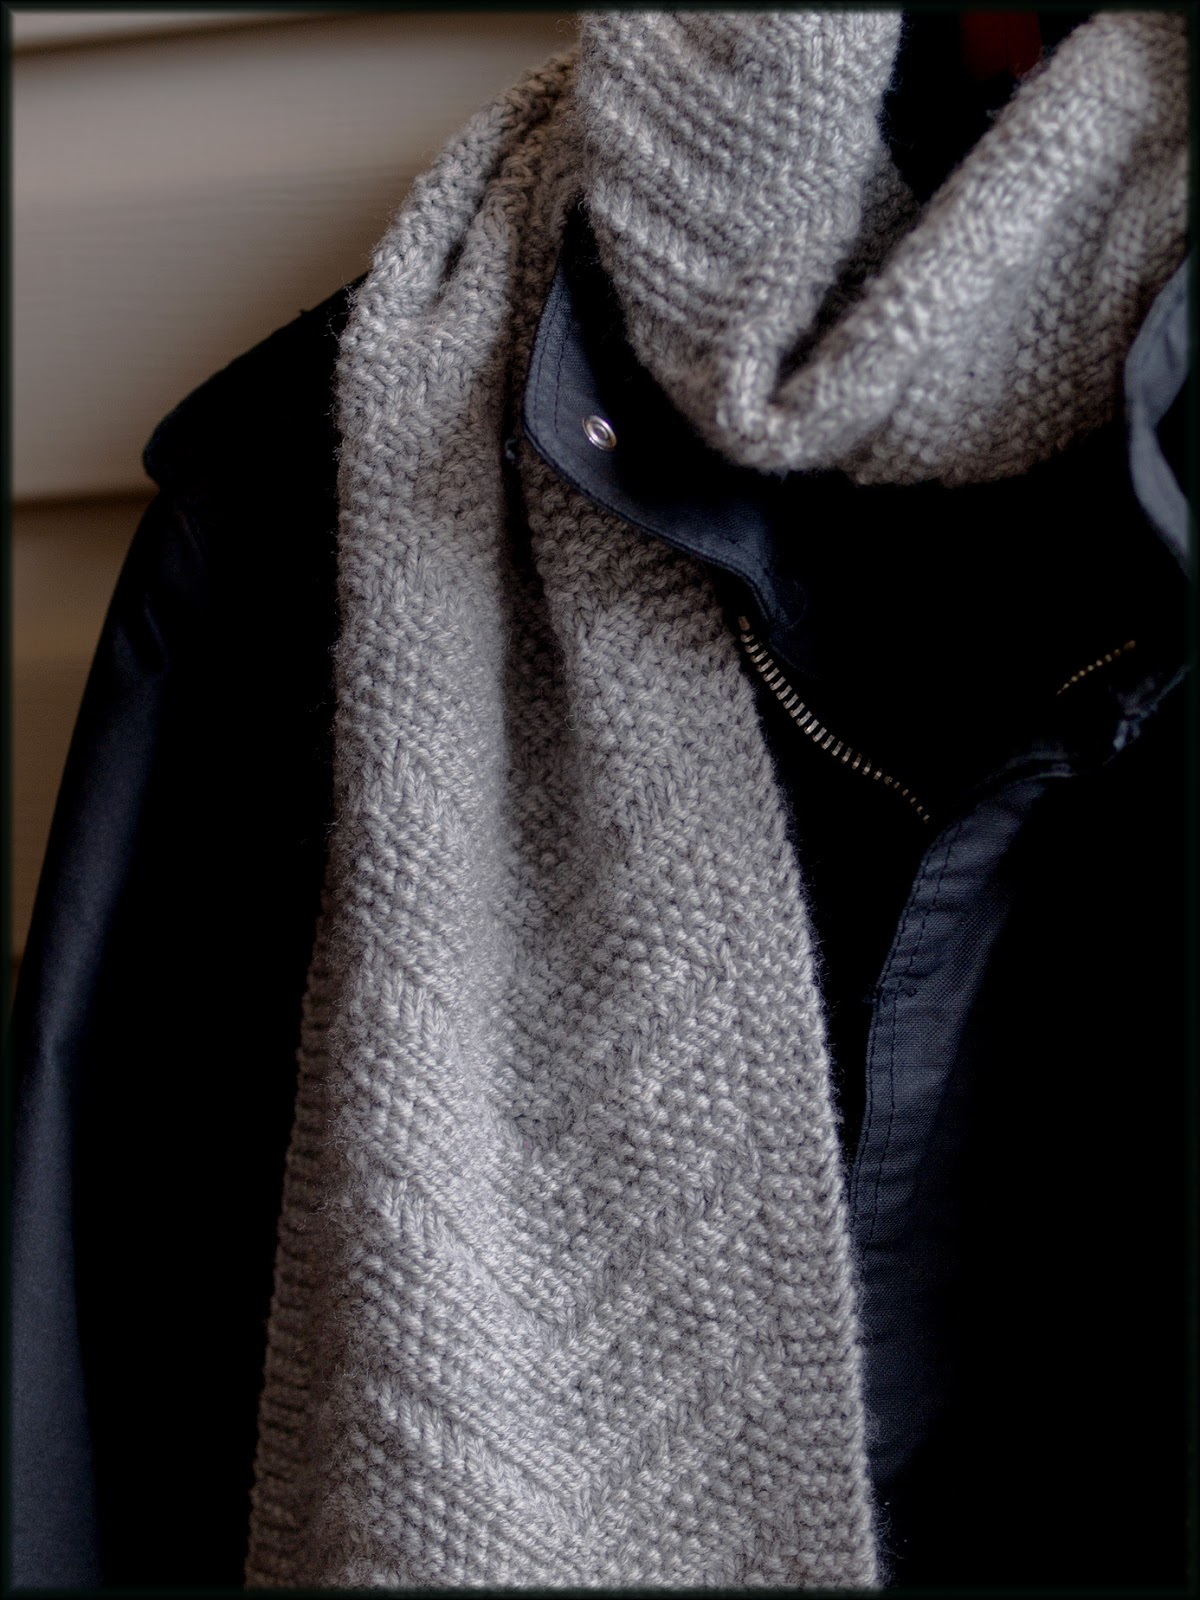 Knitting Patterns For Men Scarf : Wyndlestraw Designs: How long shall I make this scarf?